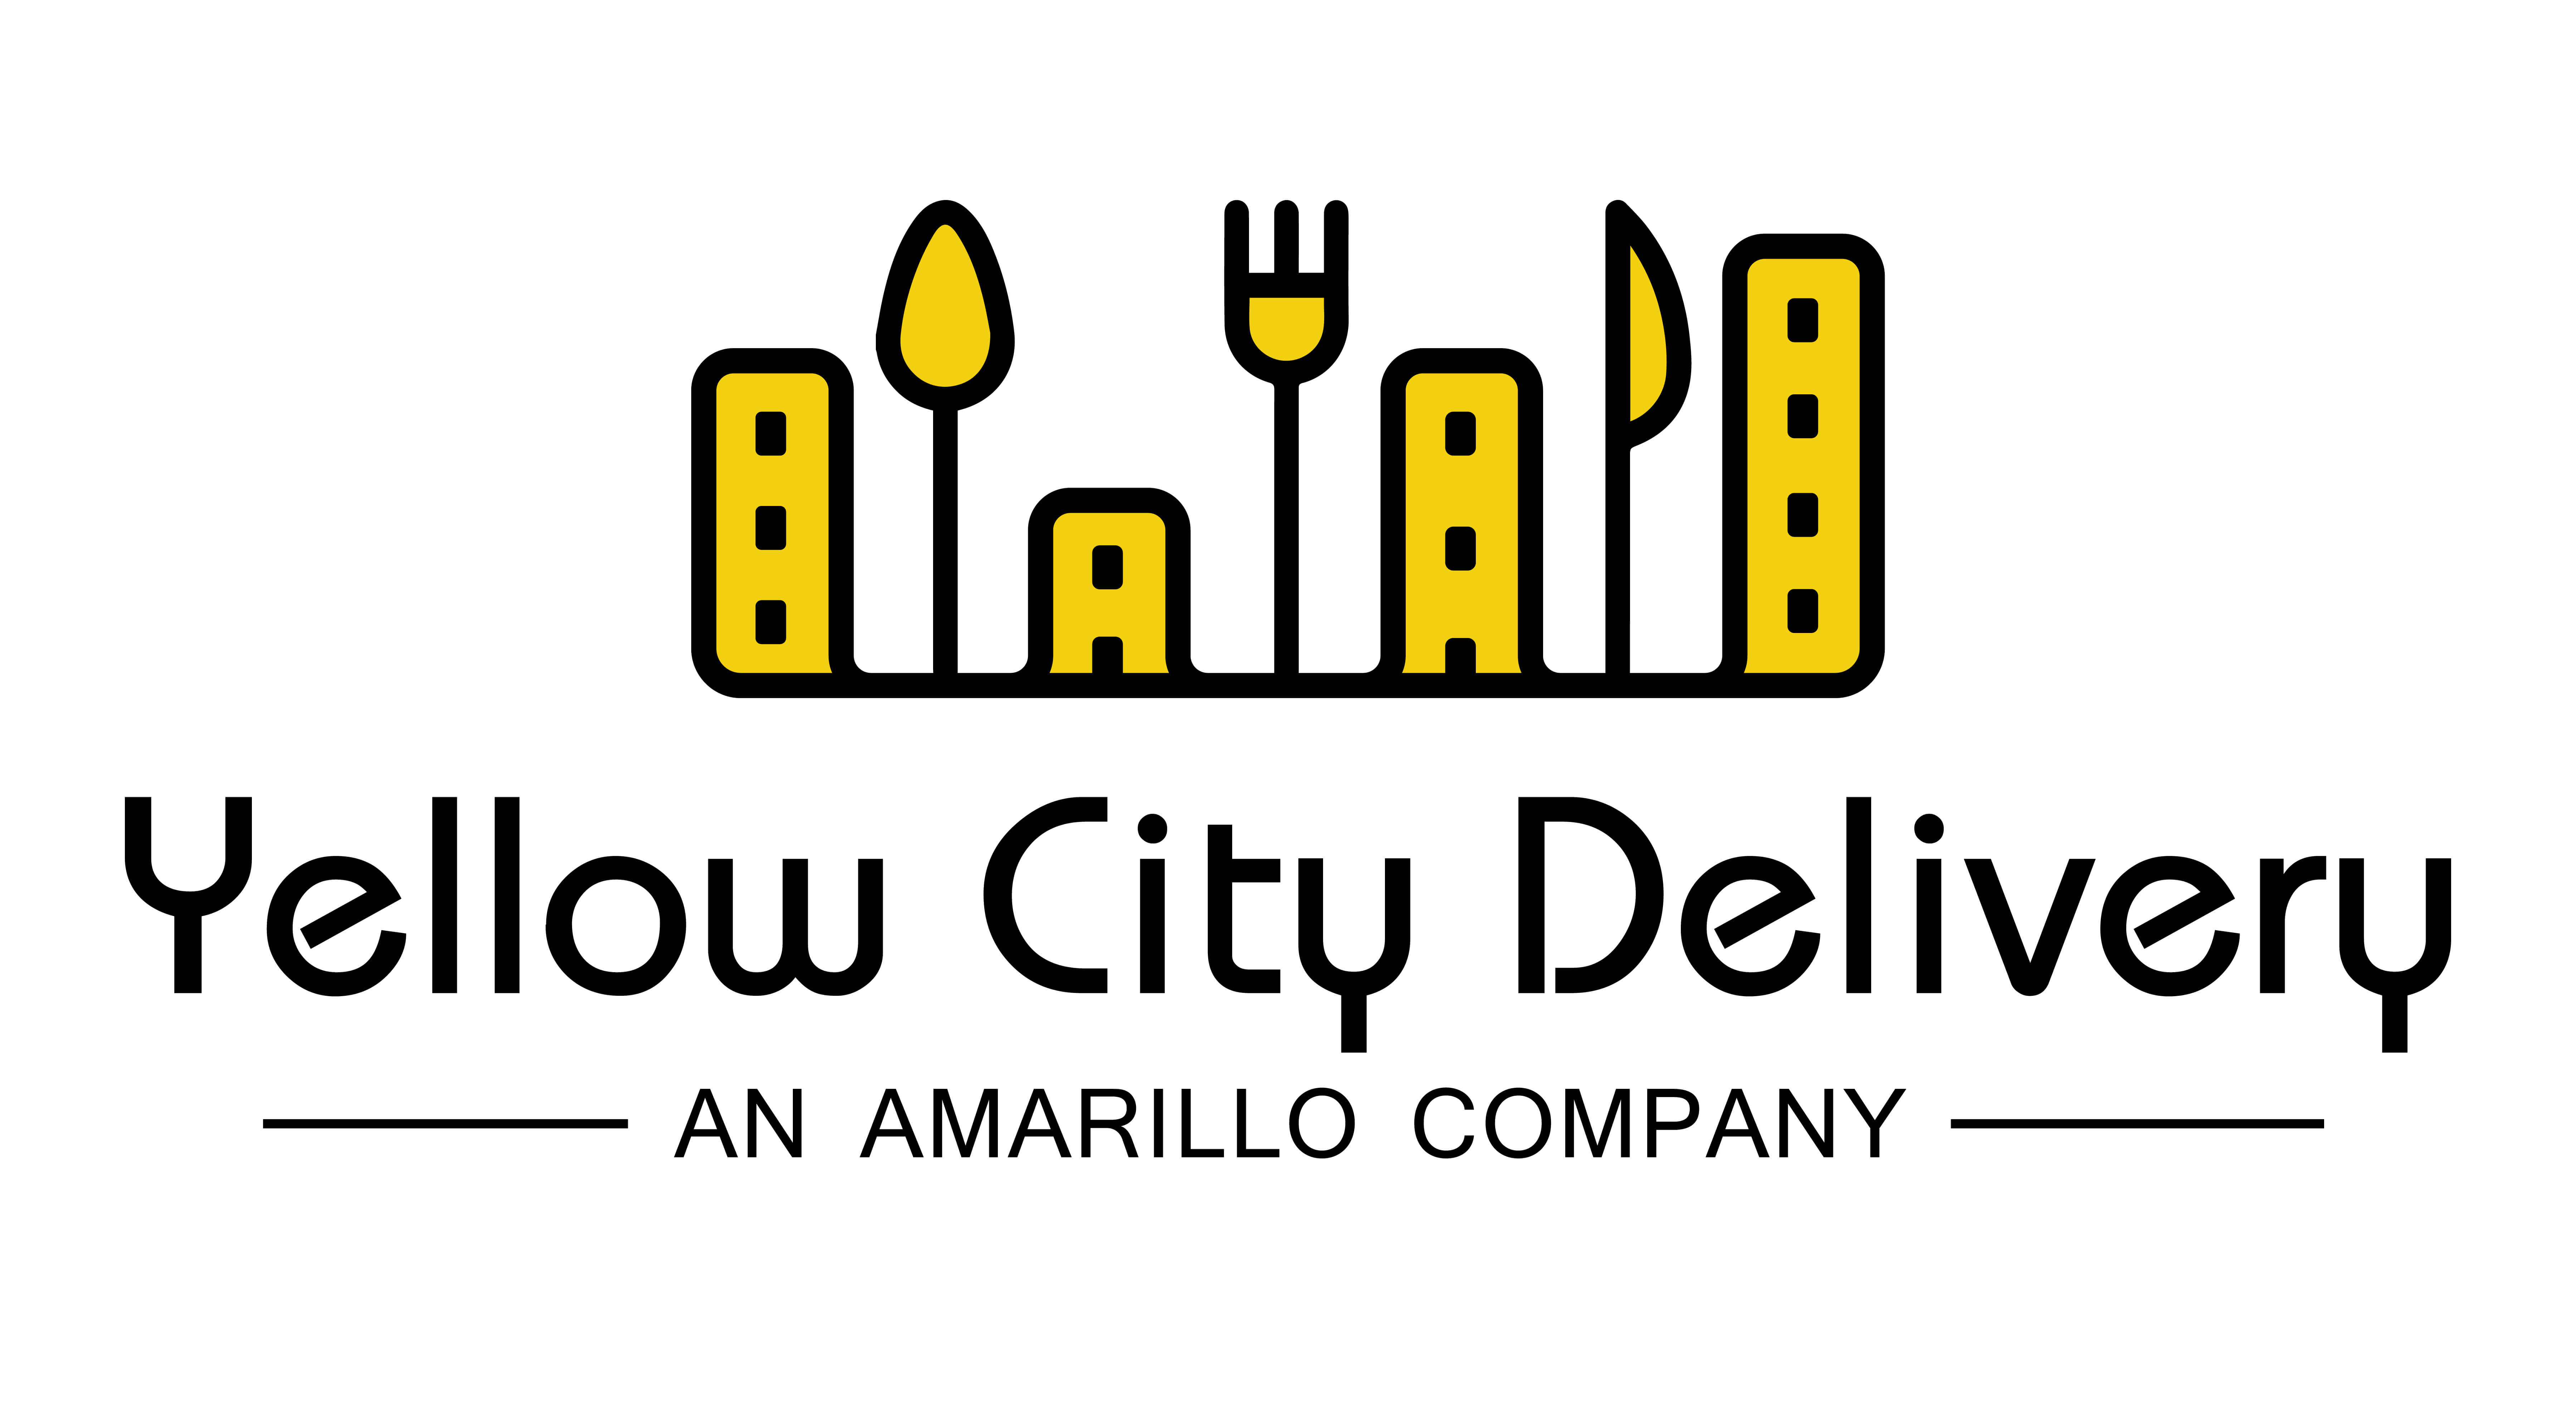 Food-delivery-Amarillo-Texas-Yellow City Delivery